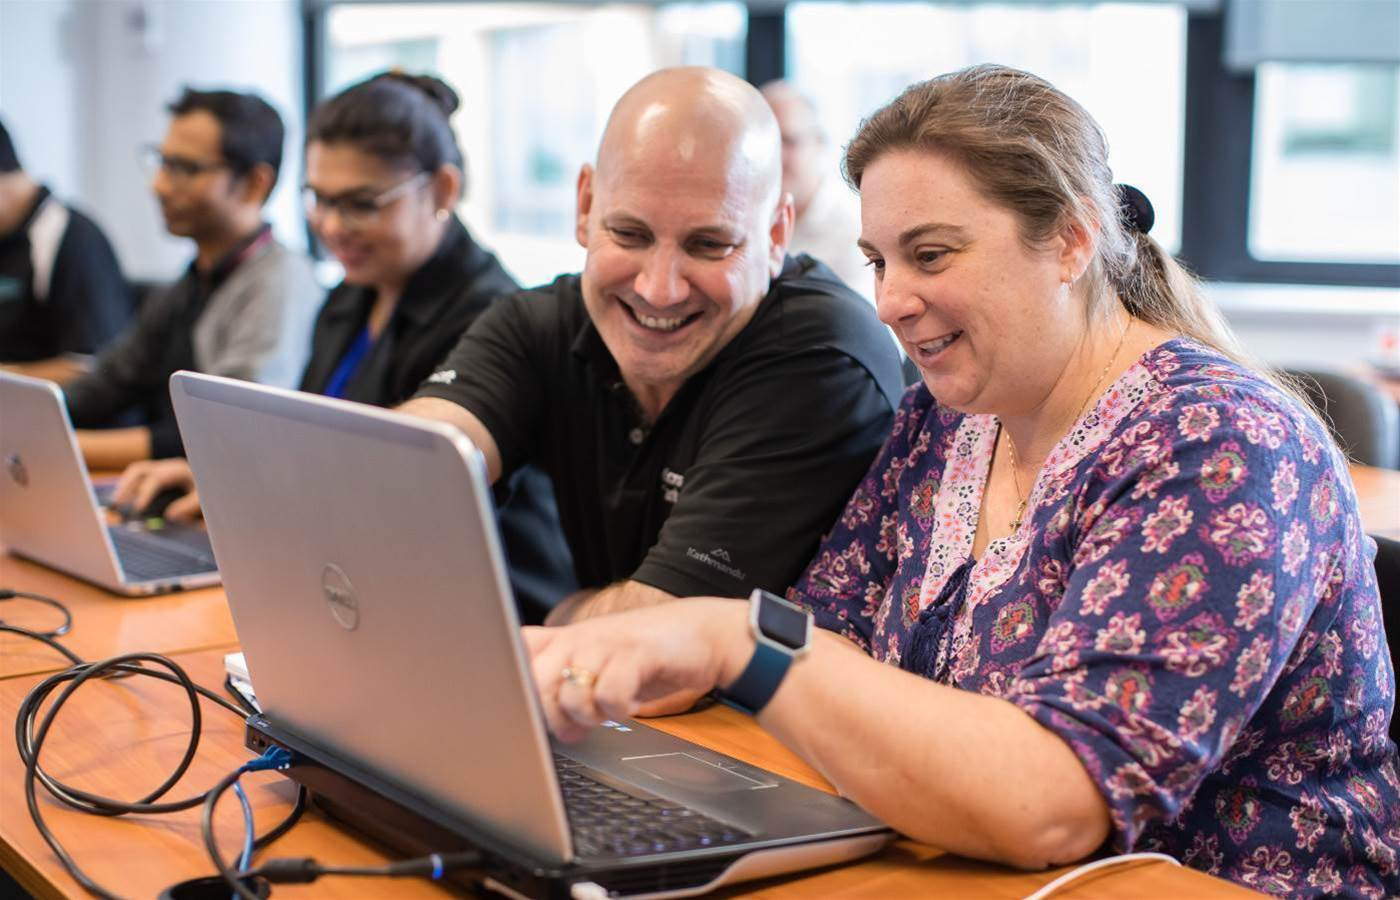 Microsoft launches cloud computing education initiative to Australian public service workers